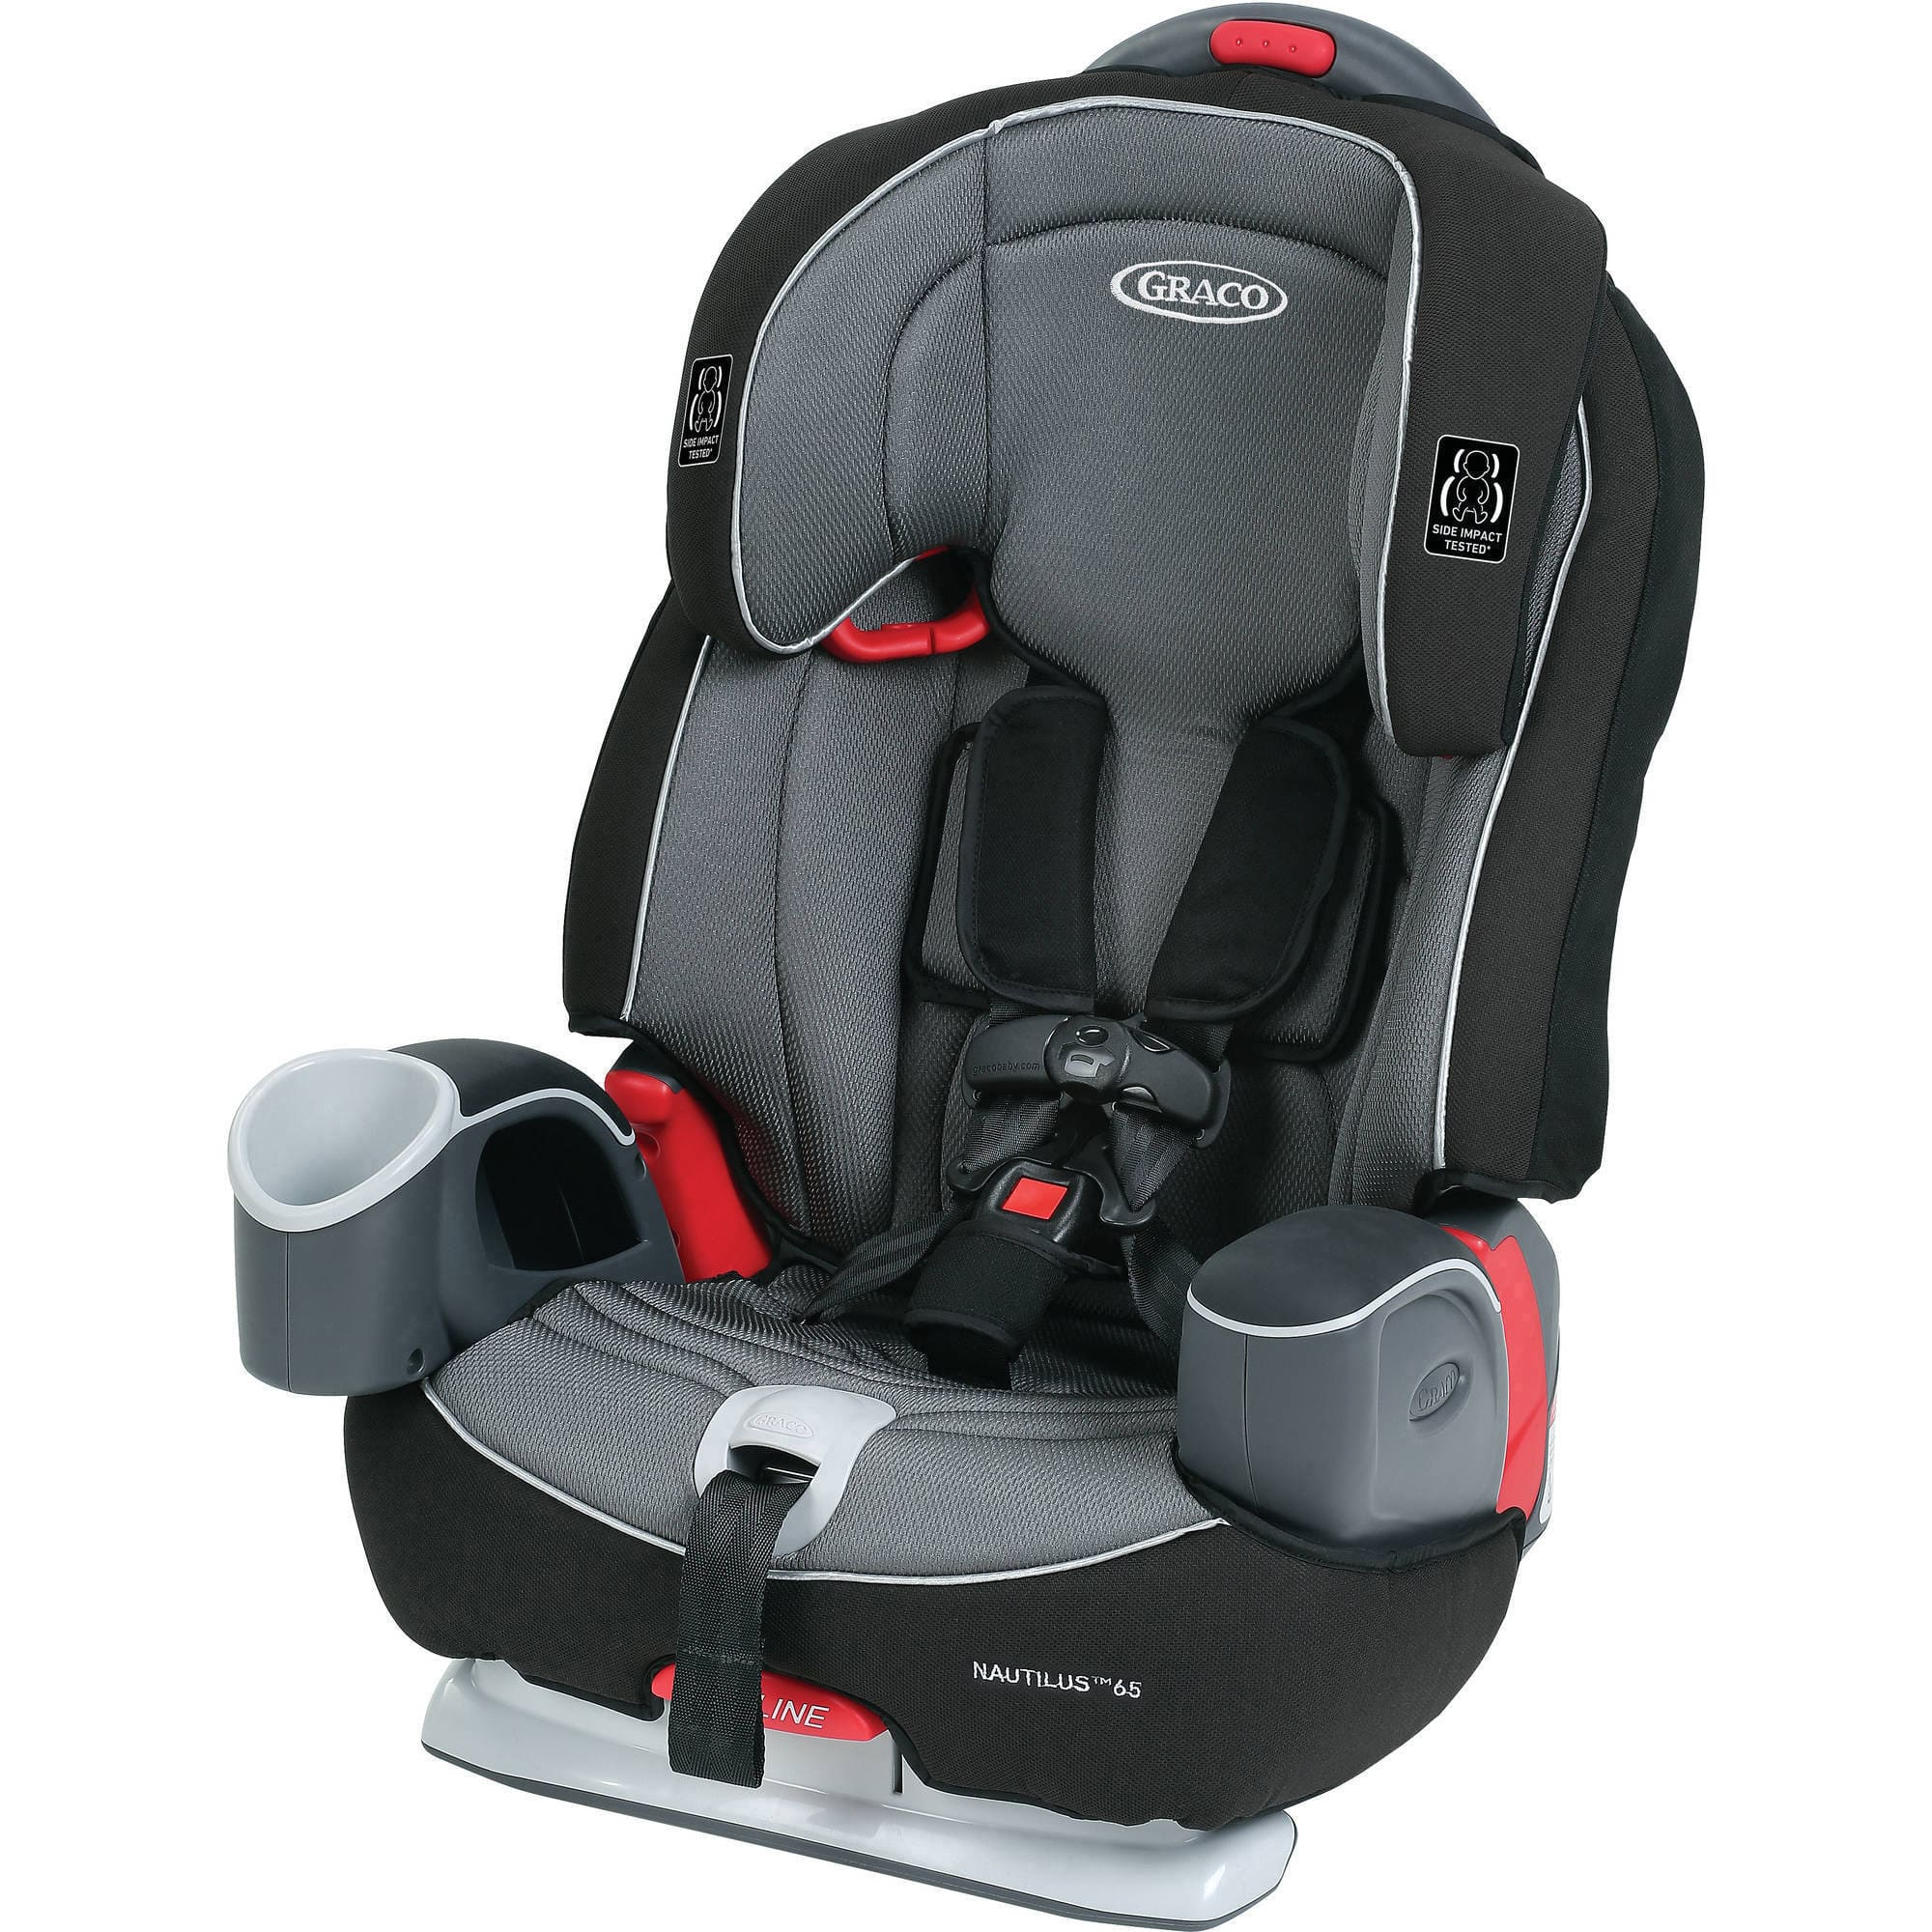 Graco Nautilus 65 3-in-1 Multi-Use Harness Booster Car Seat, Choose Your Pattern for $89